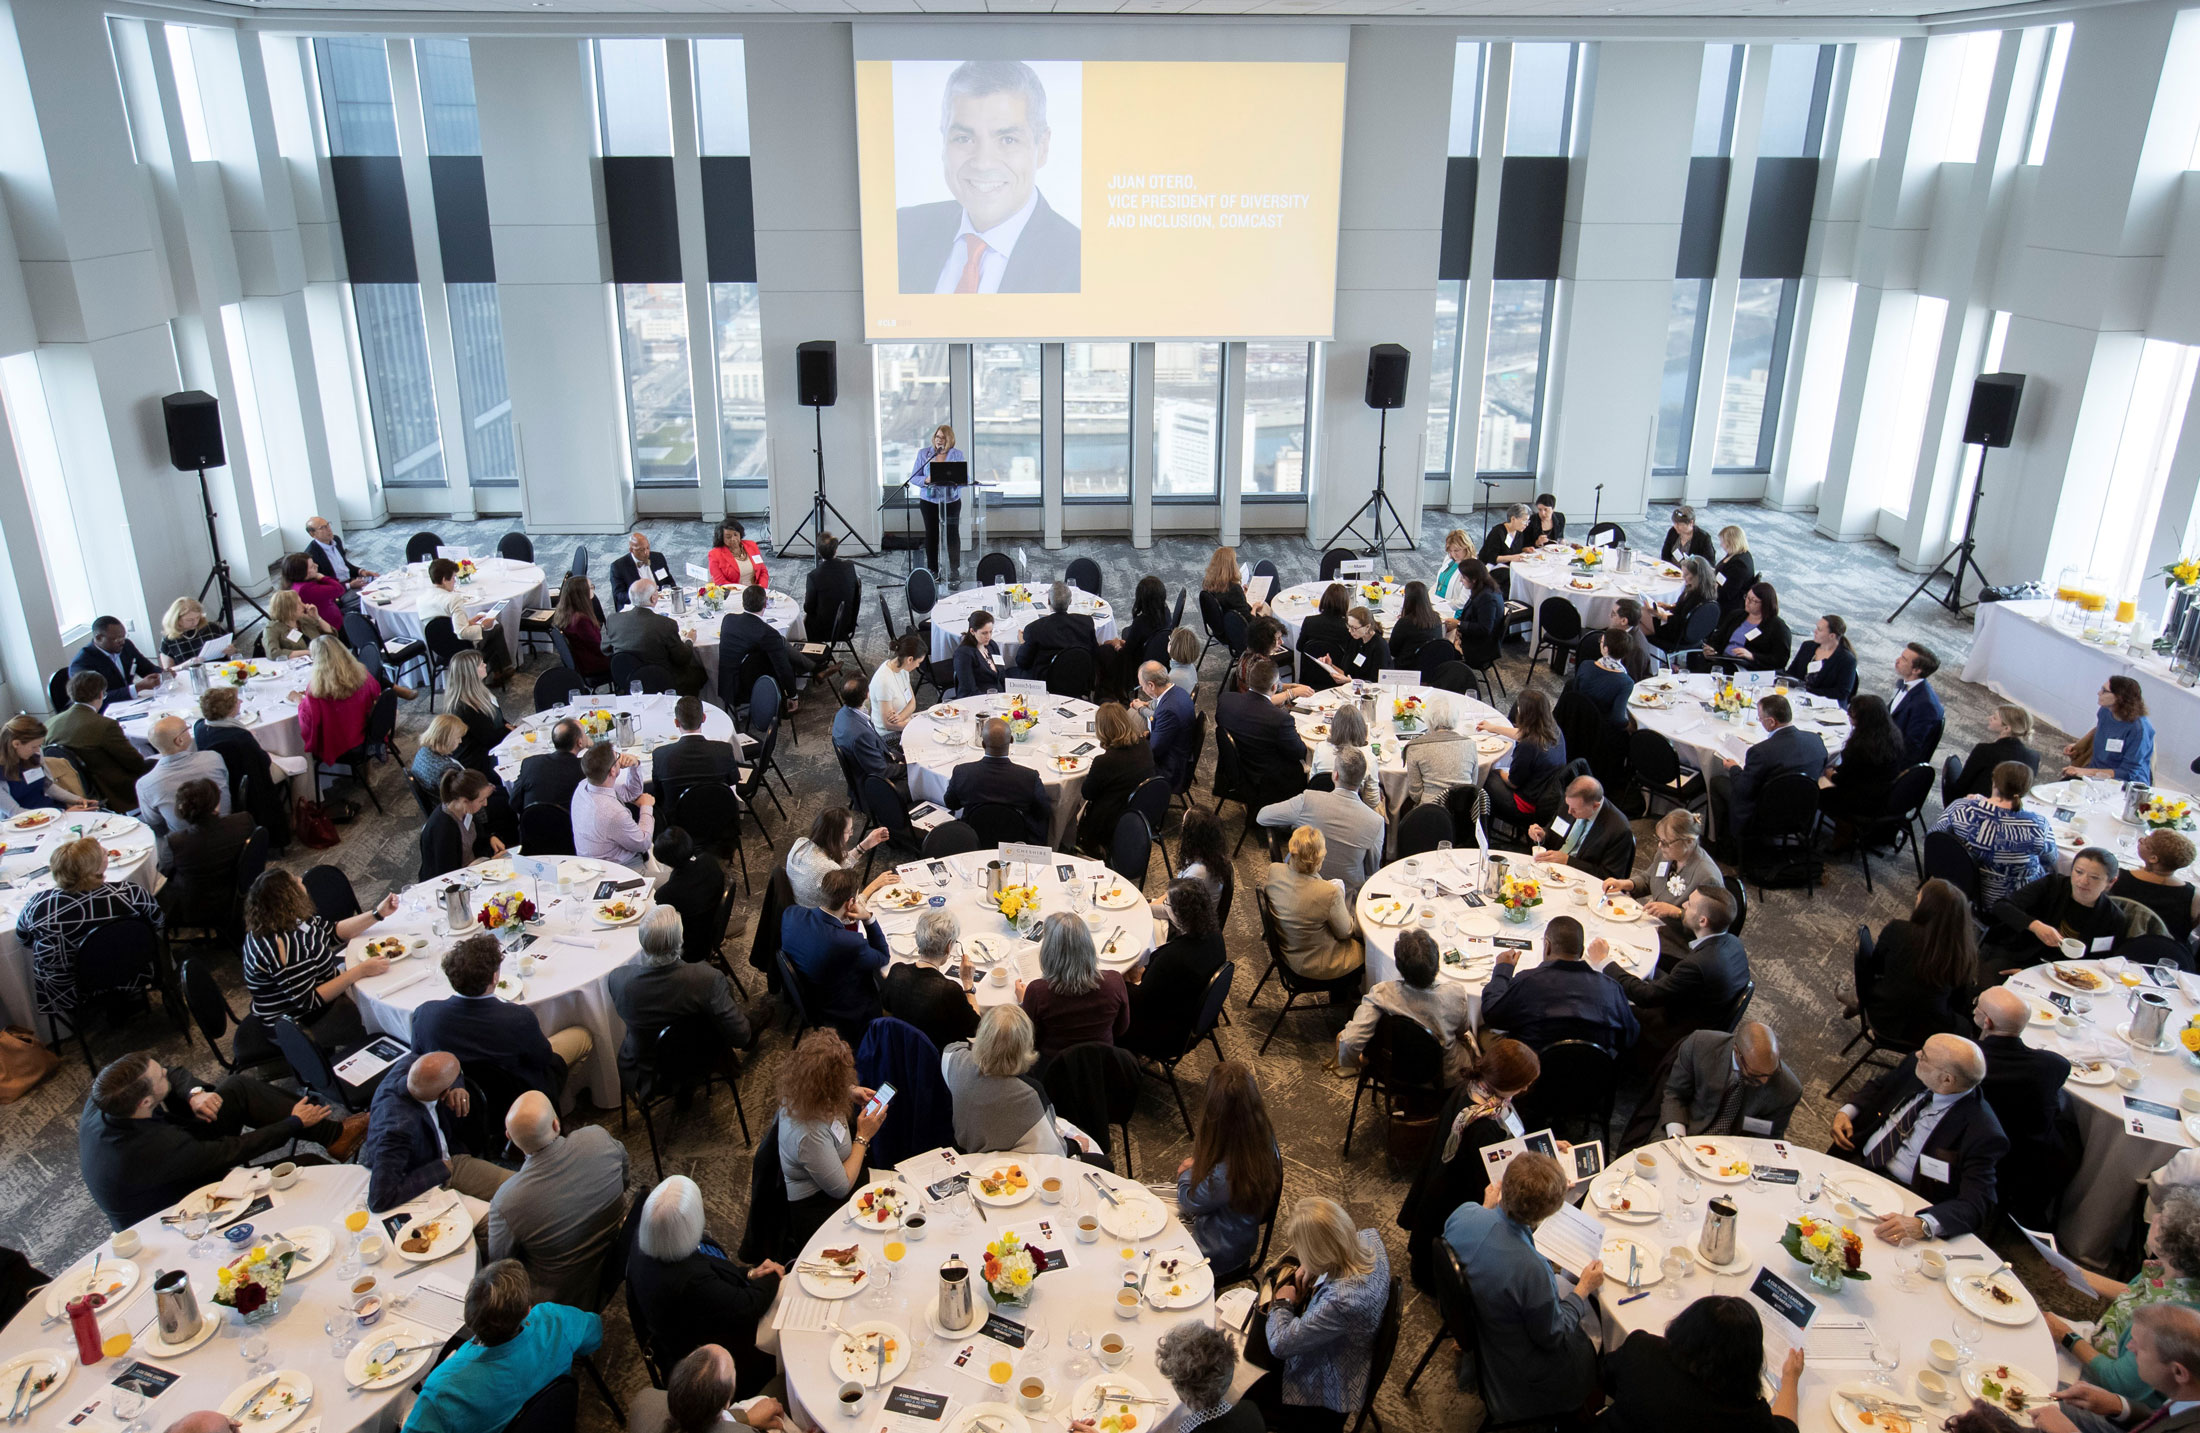 Corporate - VUE on 50 can accommodate groups of all sizes for events of all types including:Meetings and TrainingsBreakfast FunctionsConferencesPresentationsHoliday PartiesCelebrationsCompany OutingsTeam Building Eventsand more...